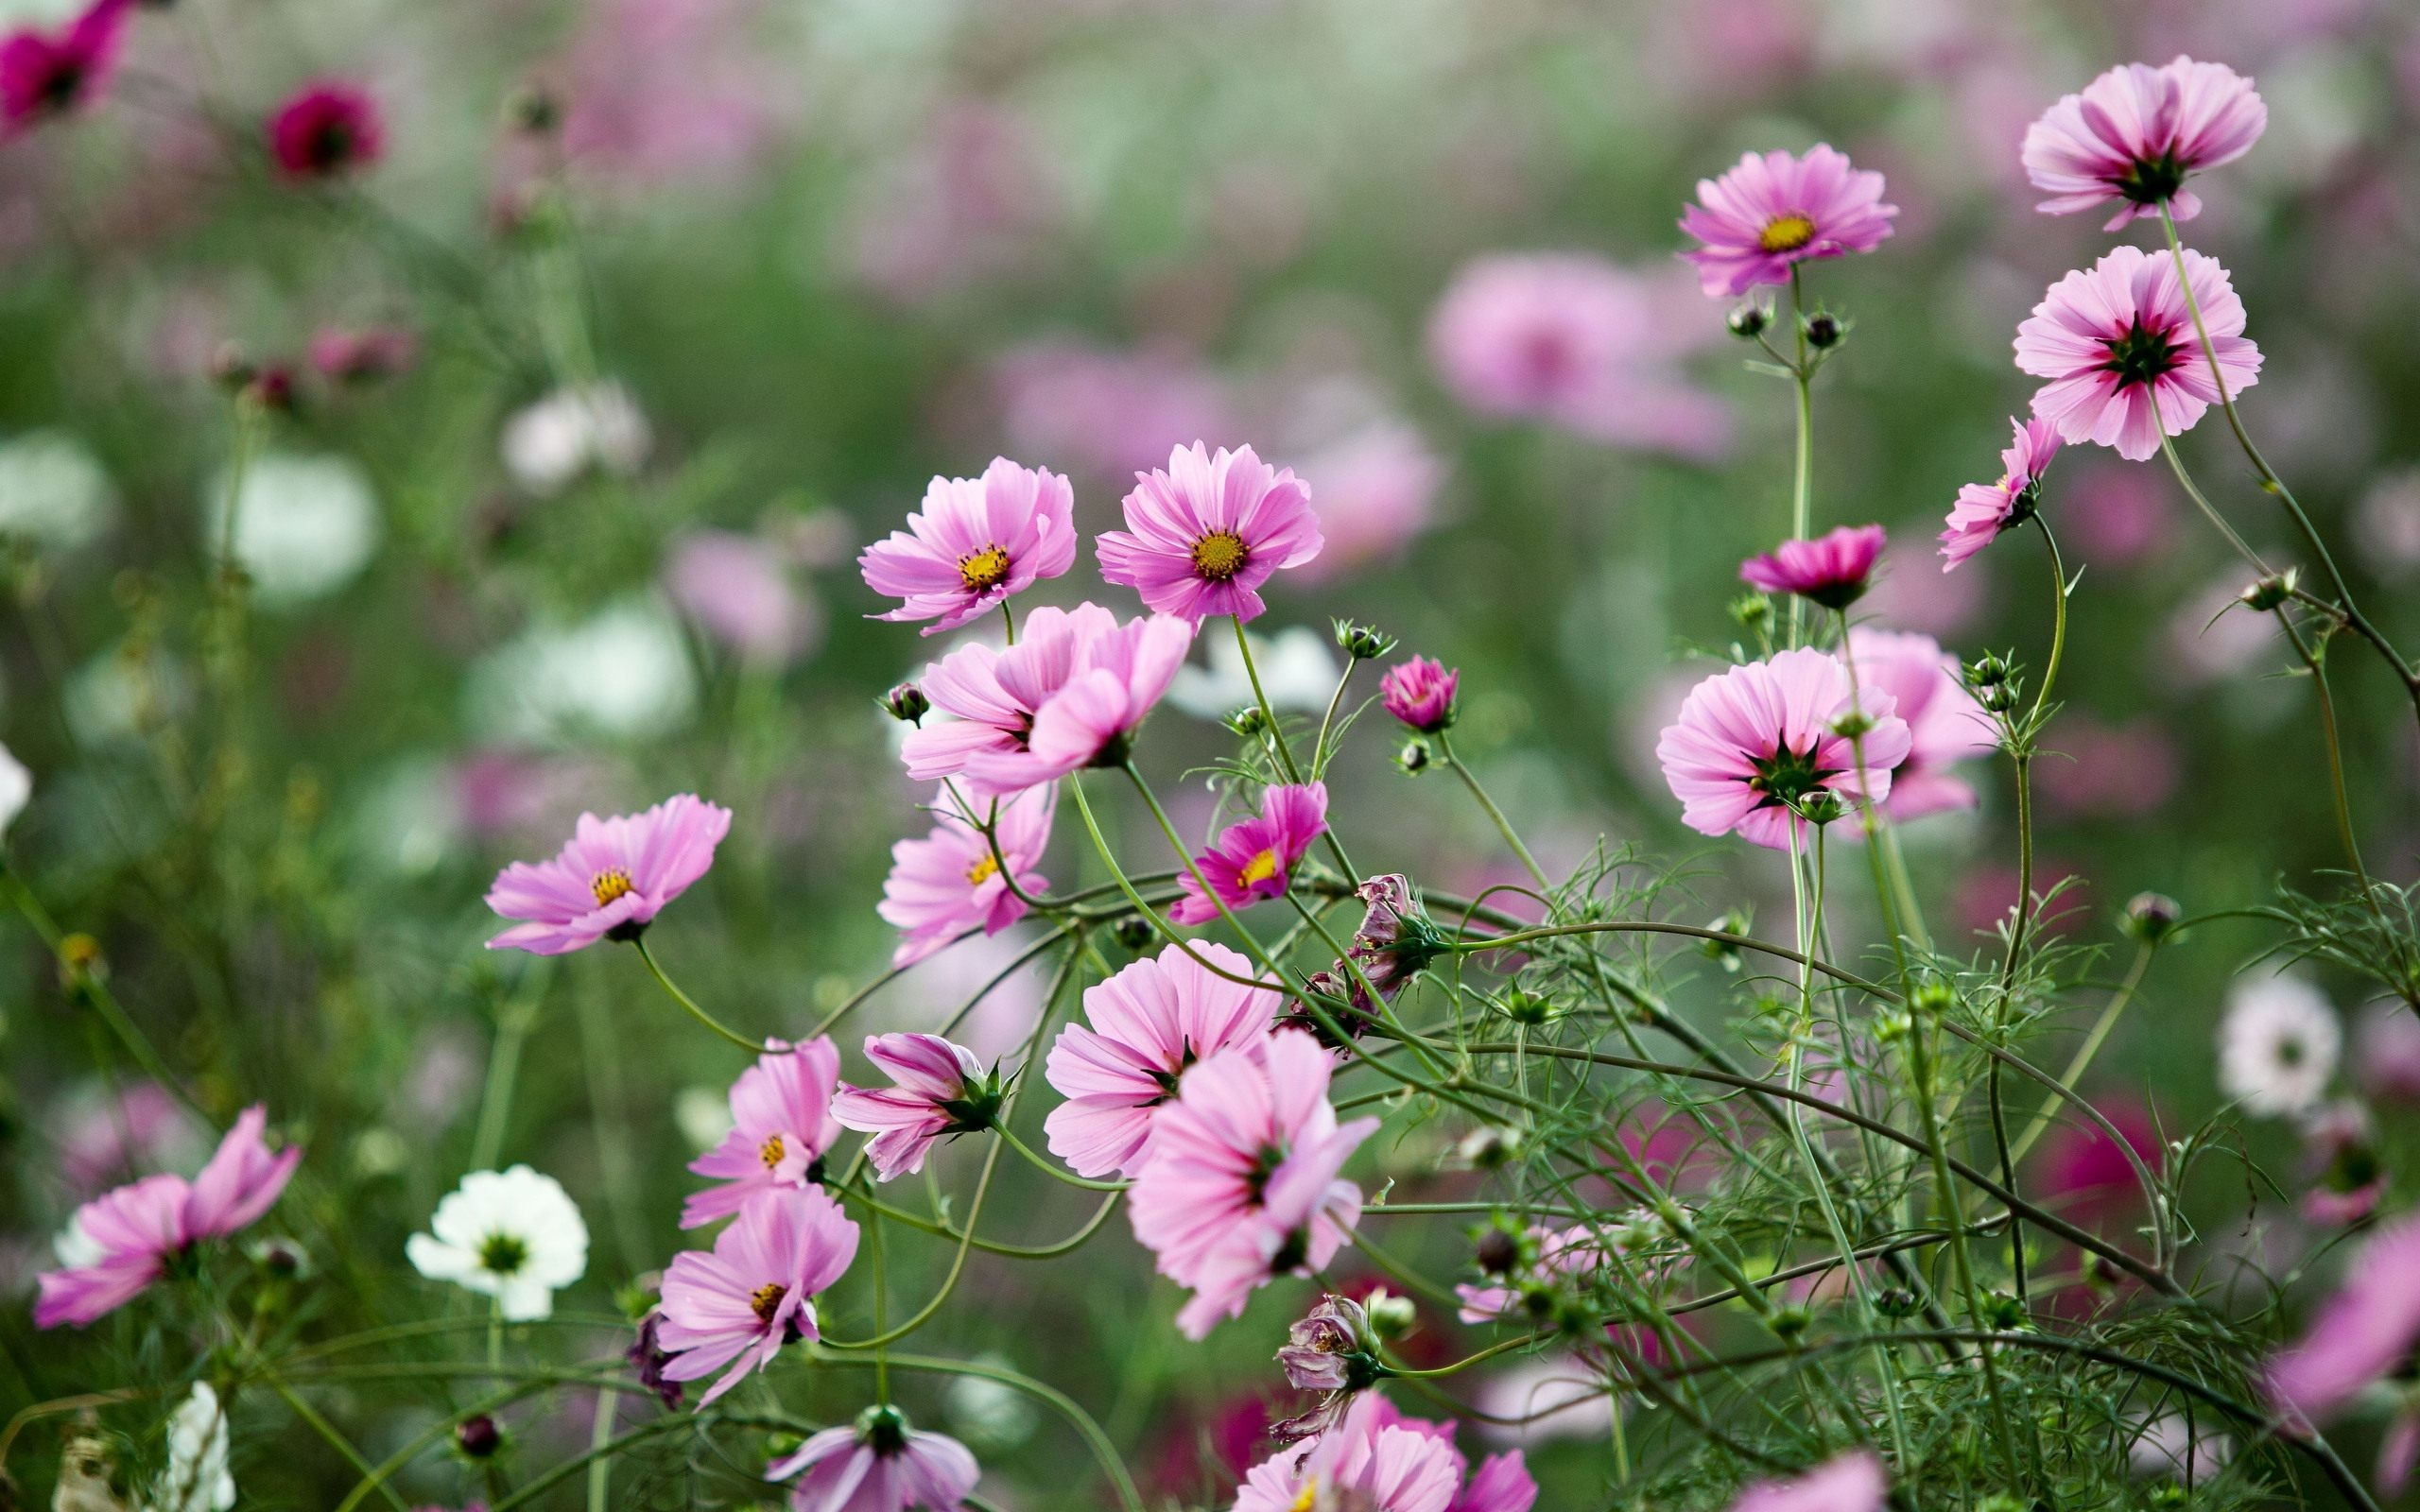 Flower Wallpapers Pink Mobile | Natures Wallpapers | Pinterest | Flower  wallpaper, Wallpaper and Hd wallpaper